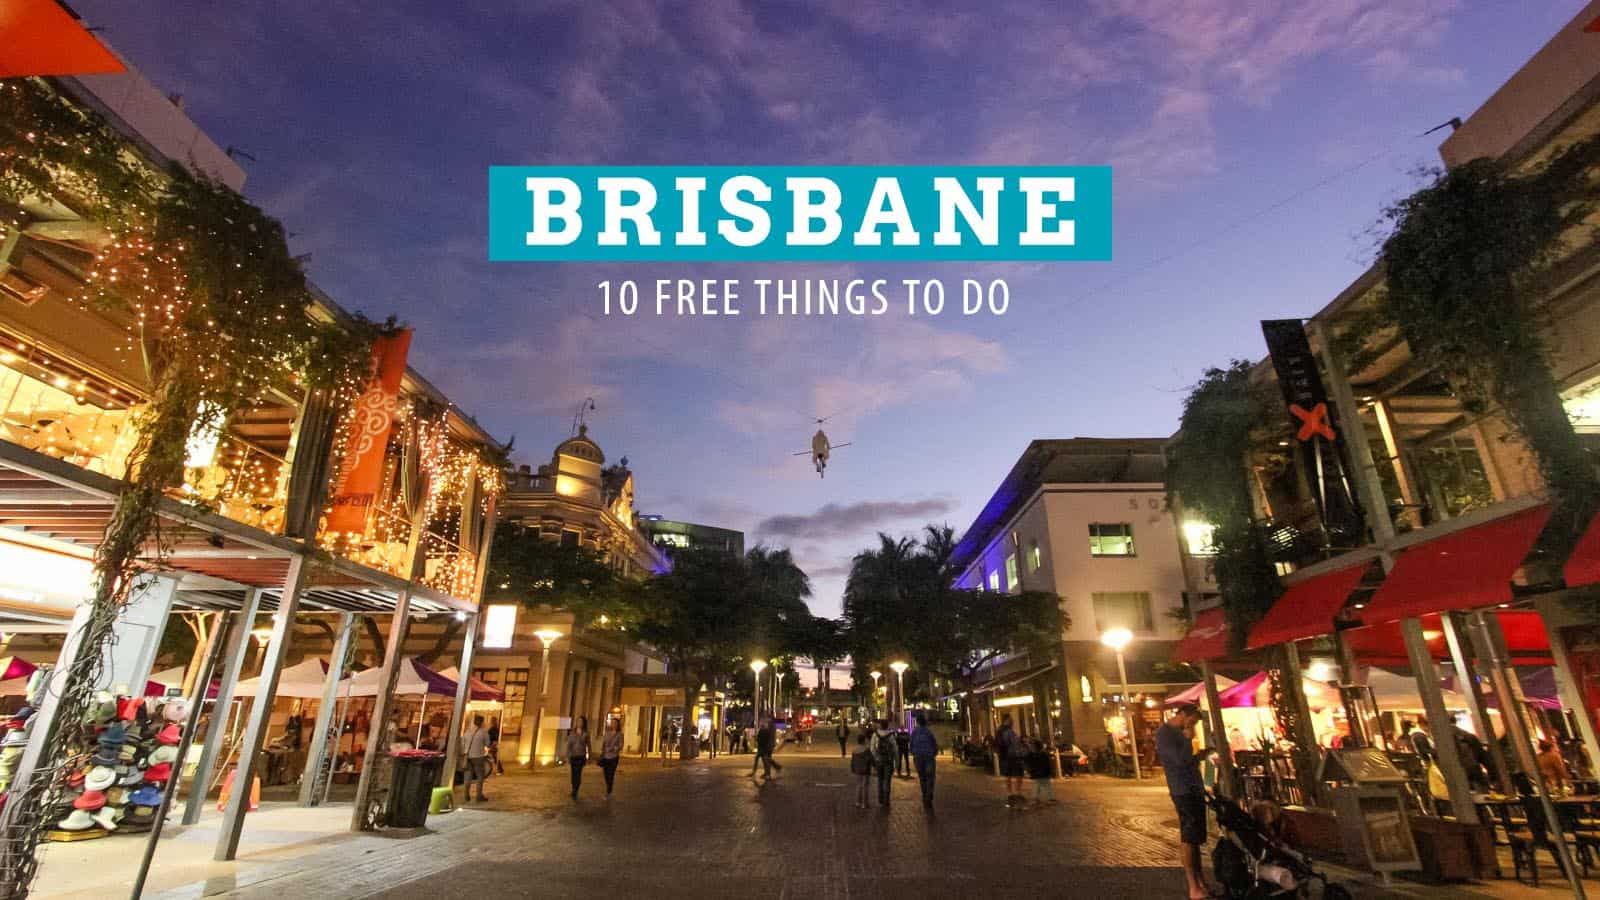 10 FREE Things to Do in Brisbane, Australia